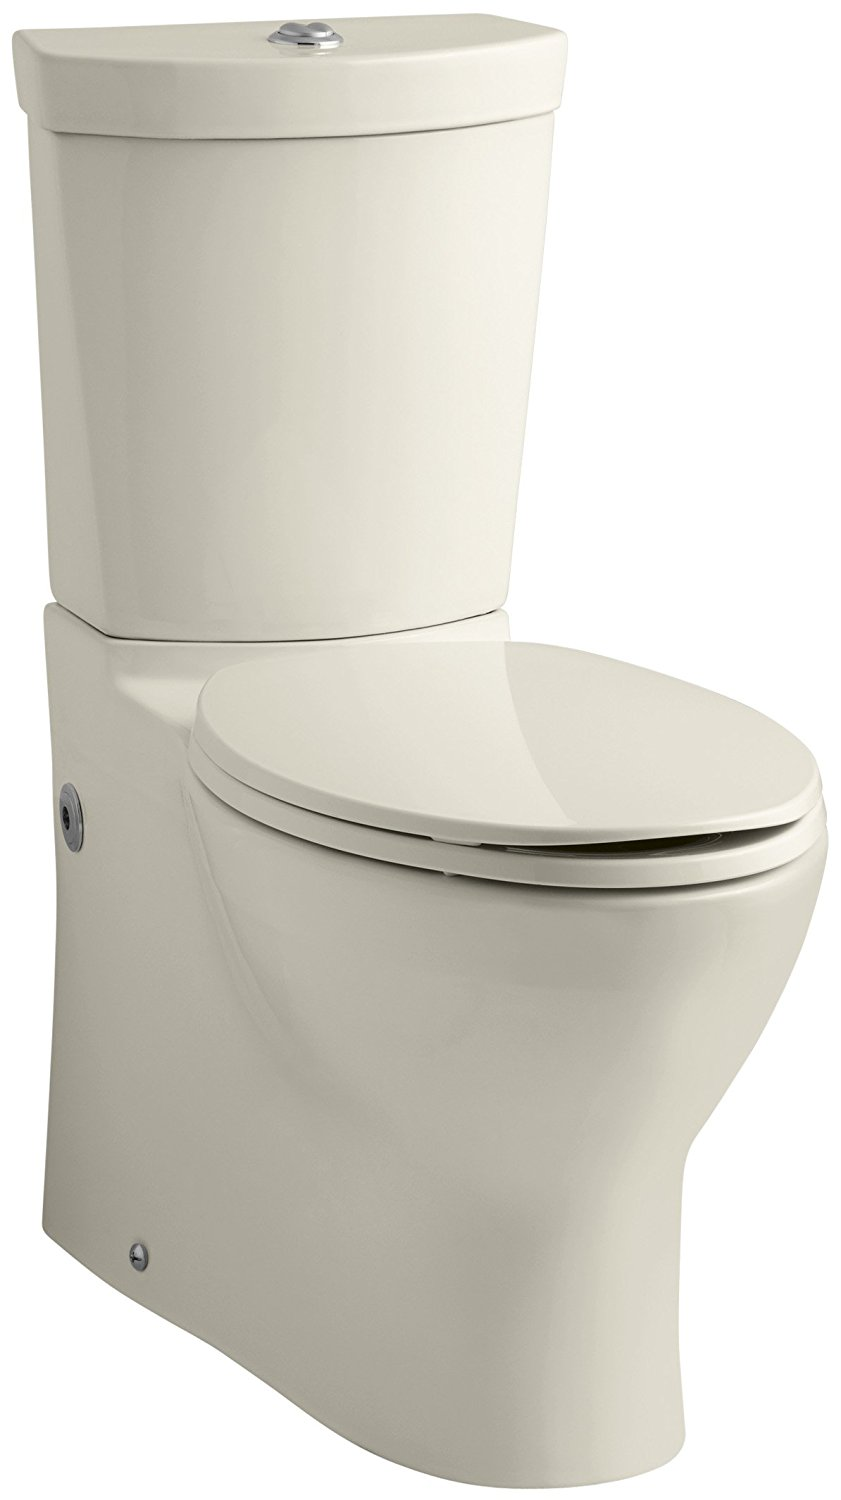 Kohler K-3654-47 Persuade Two-Piece Elongated Toilet with Dual Flush Technology, Less Seat, Almond